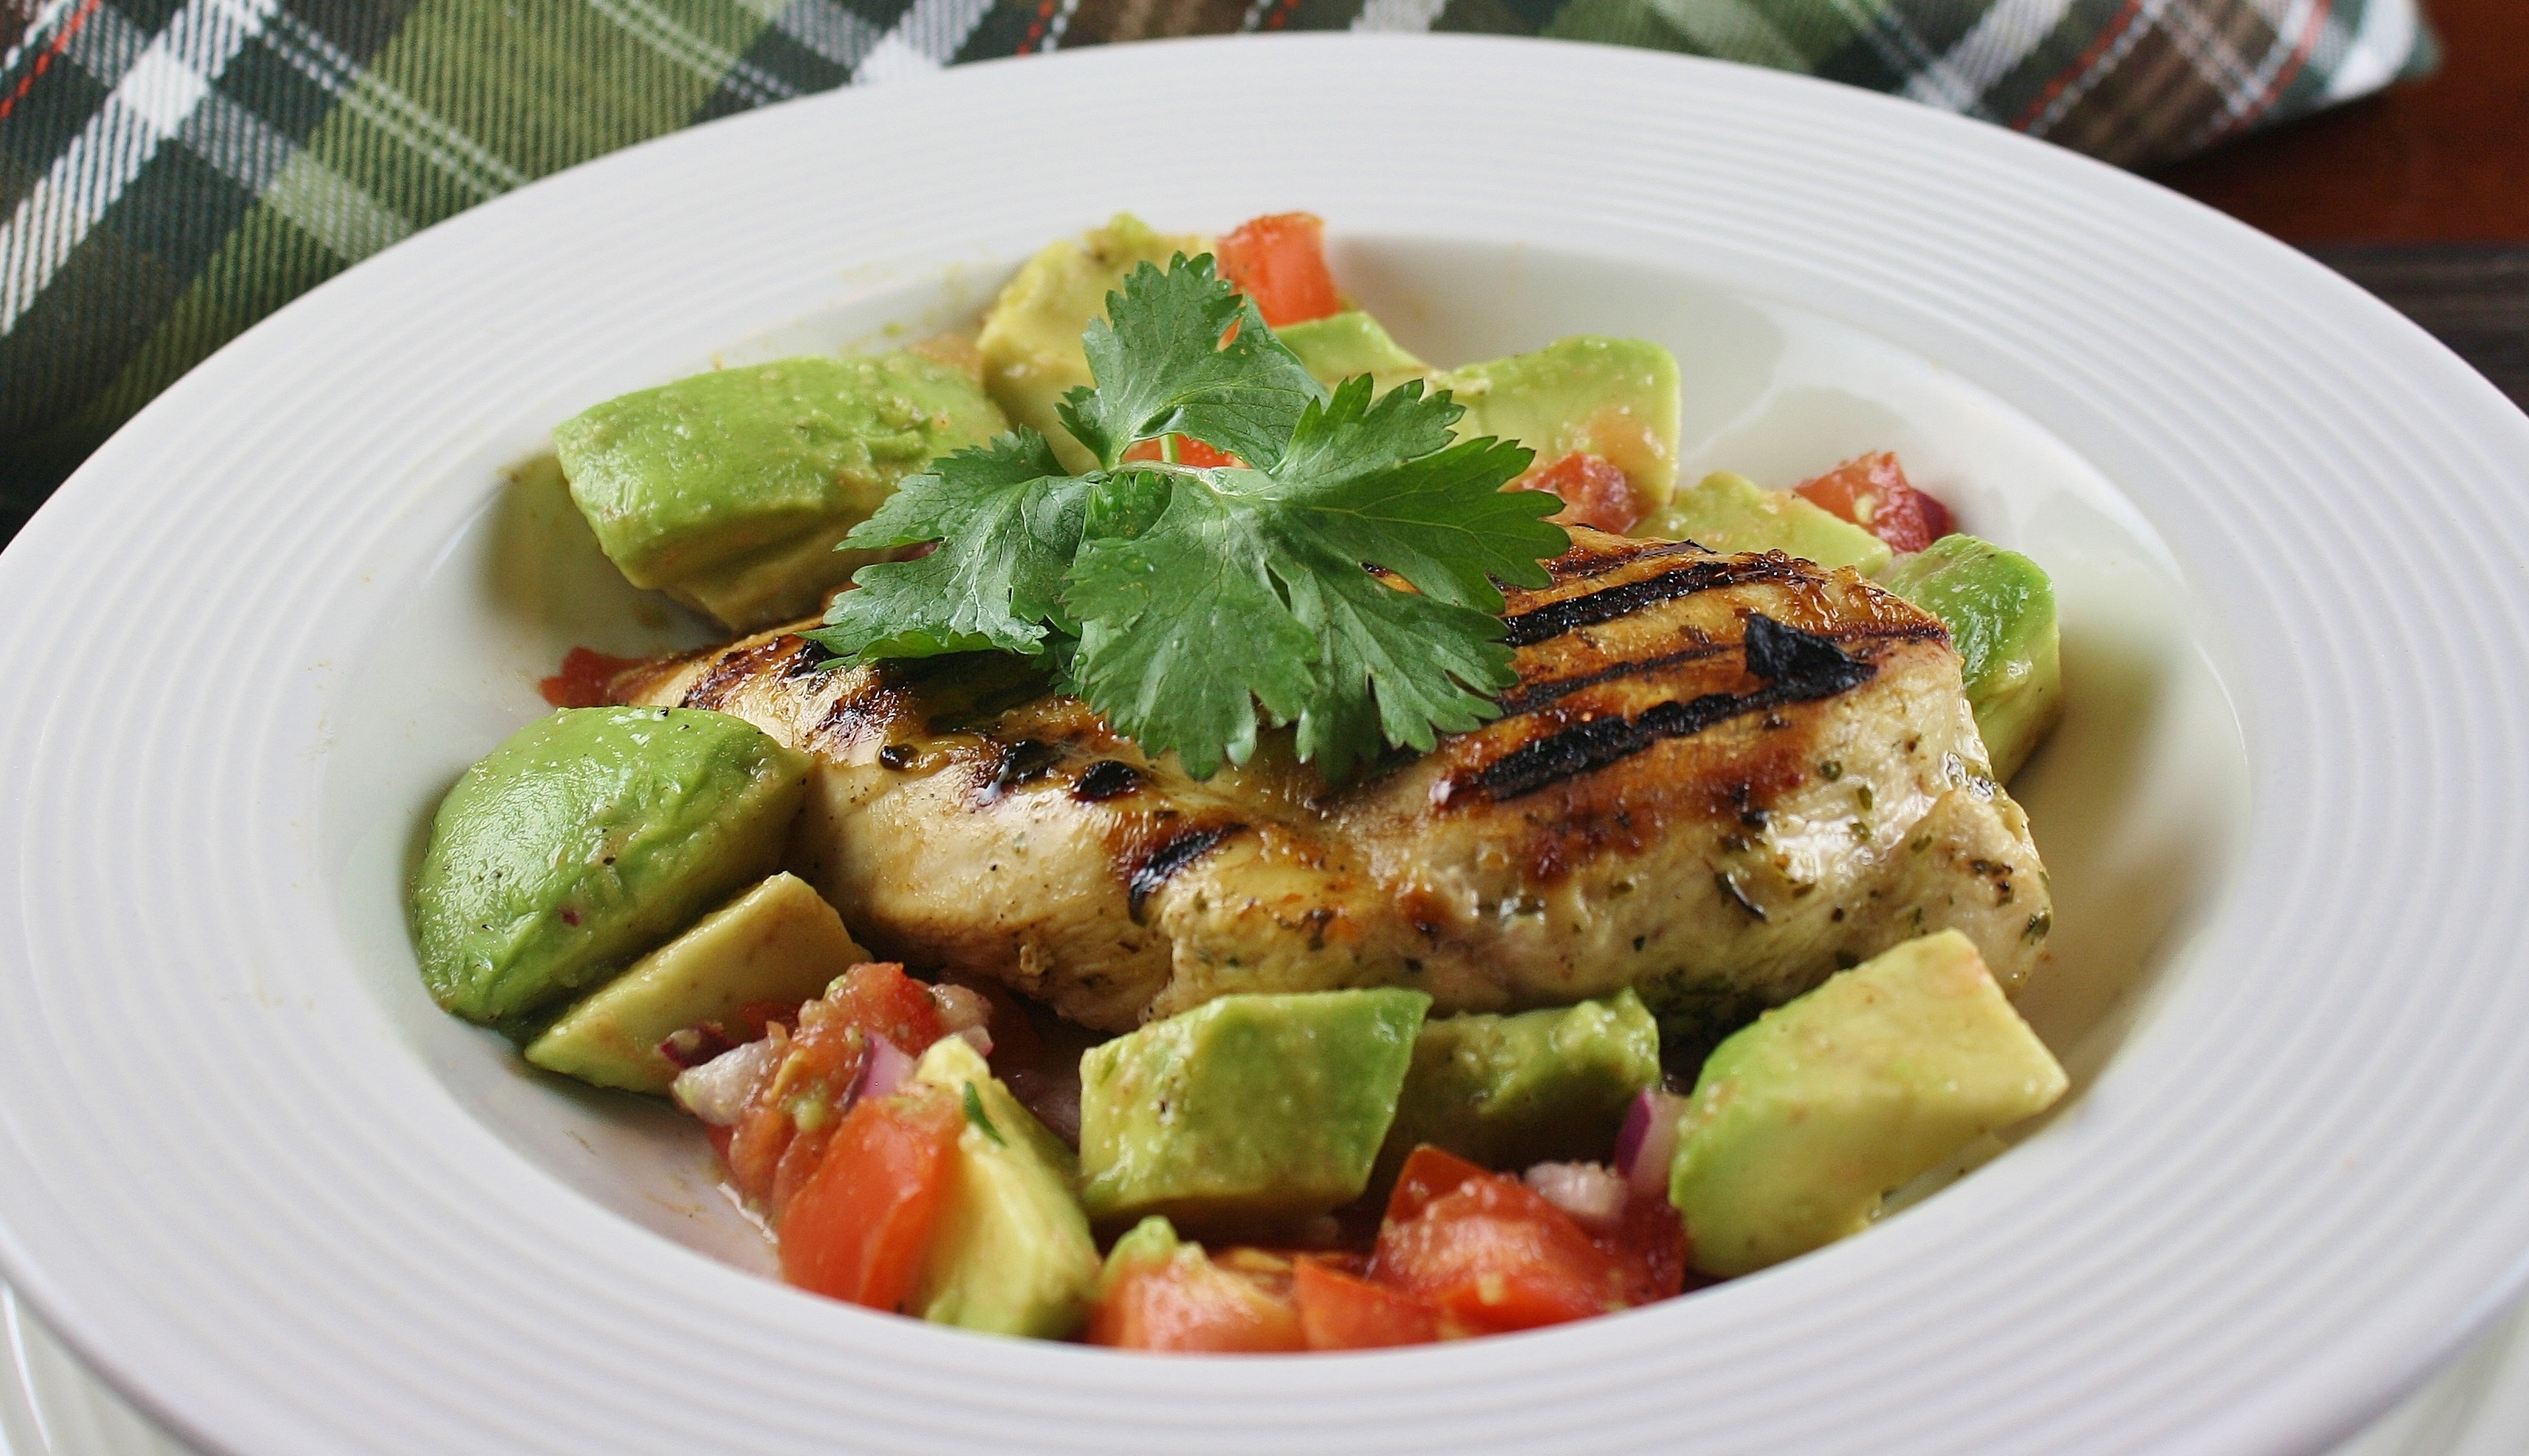 Cilantro-Lime Grilled Chicken